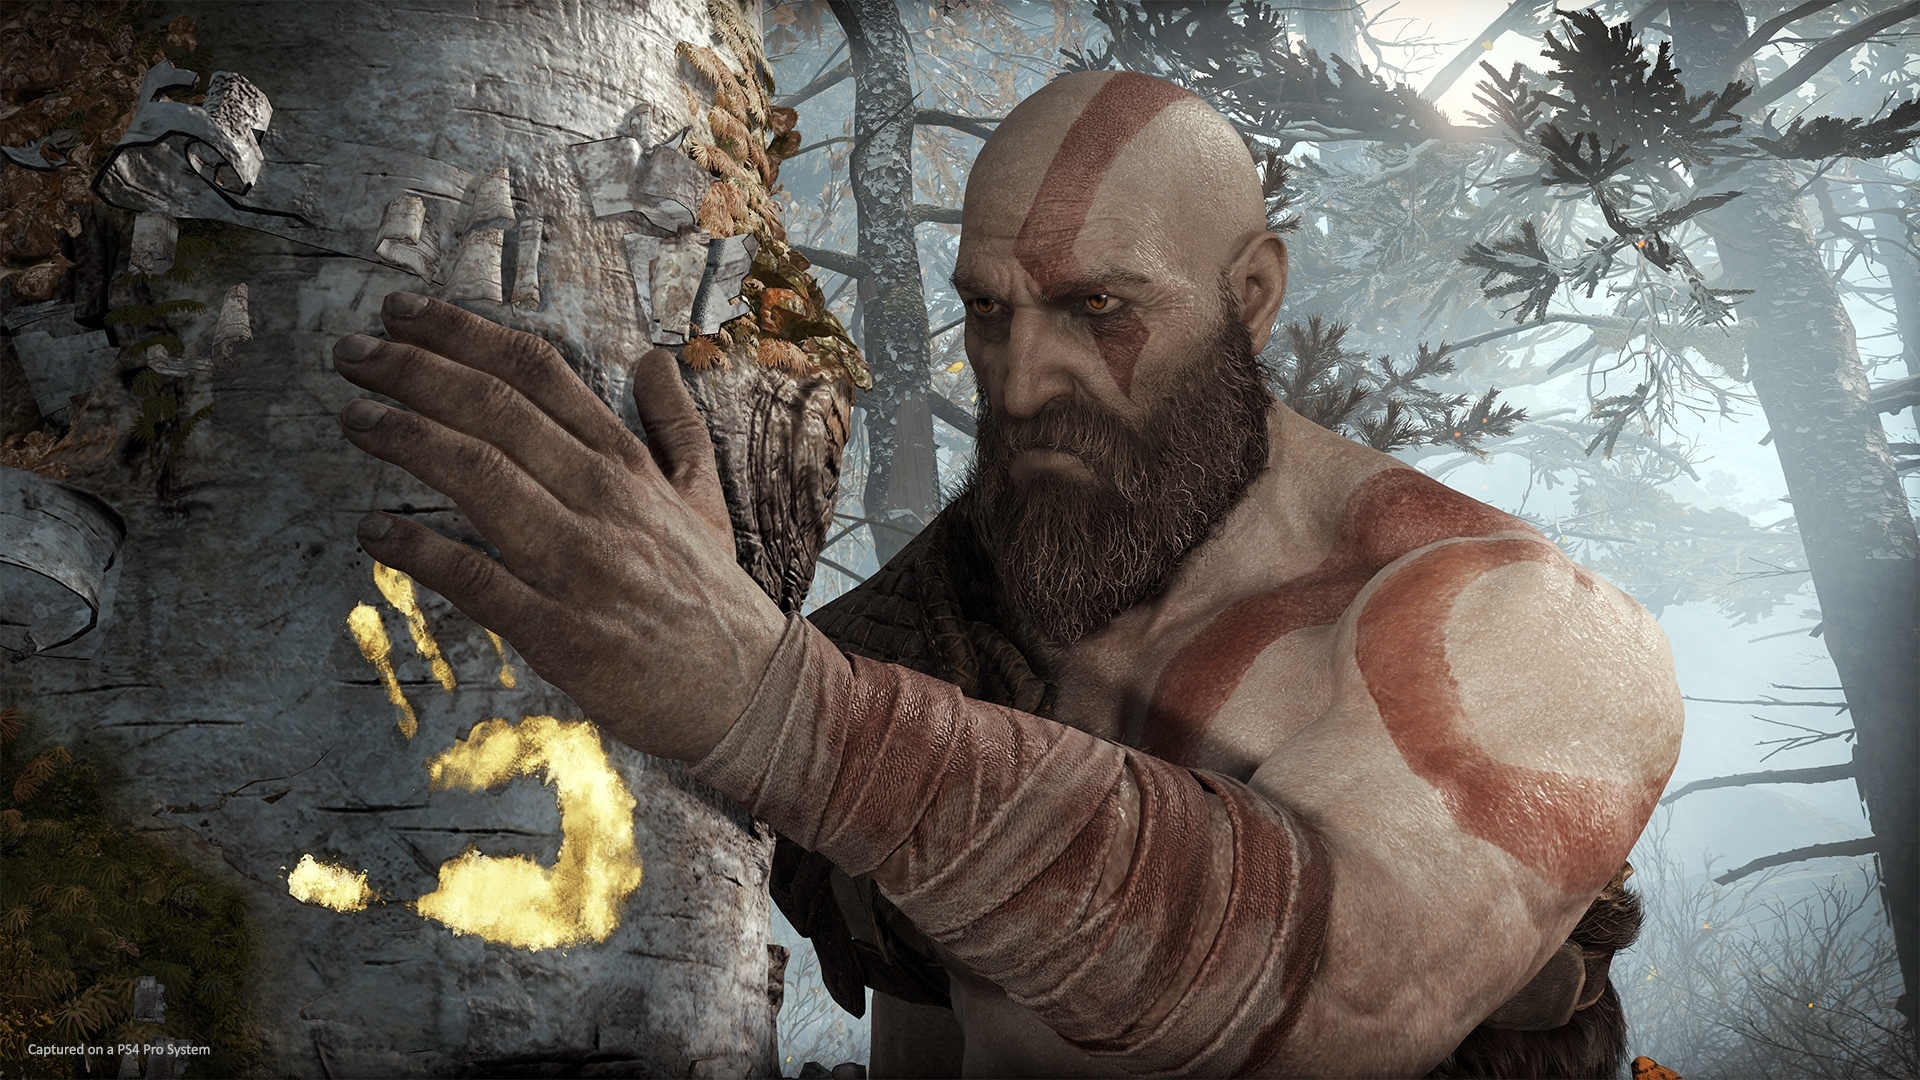 When is the God of War PS4 release date and how to pre-order?